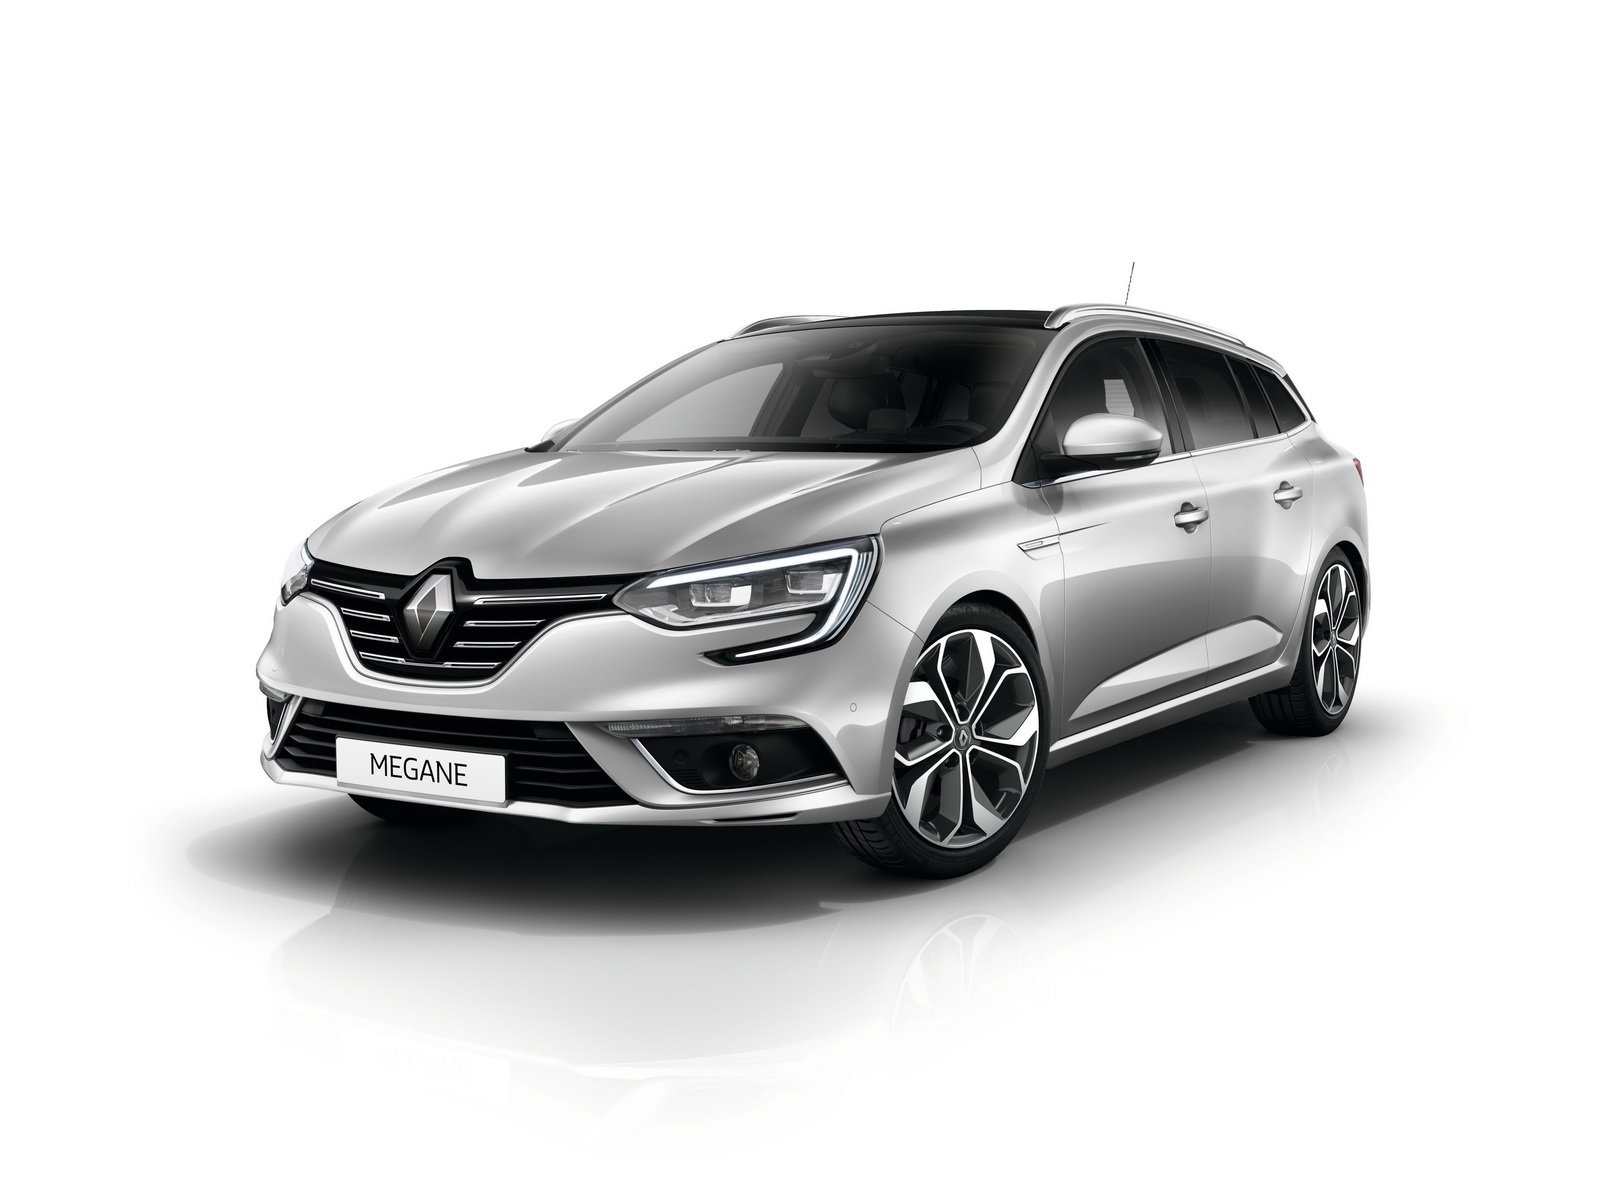 new megane estate launching from 19 900 gt will cost 32 800 autoevolution. Black Bedroom Furniture Sets. Home Design Ideas